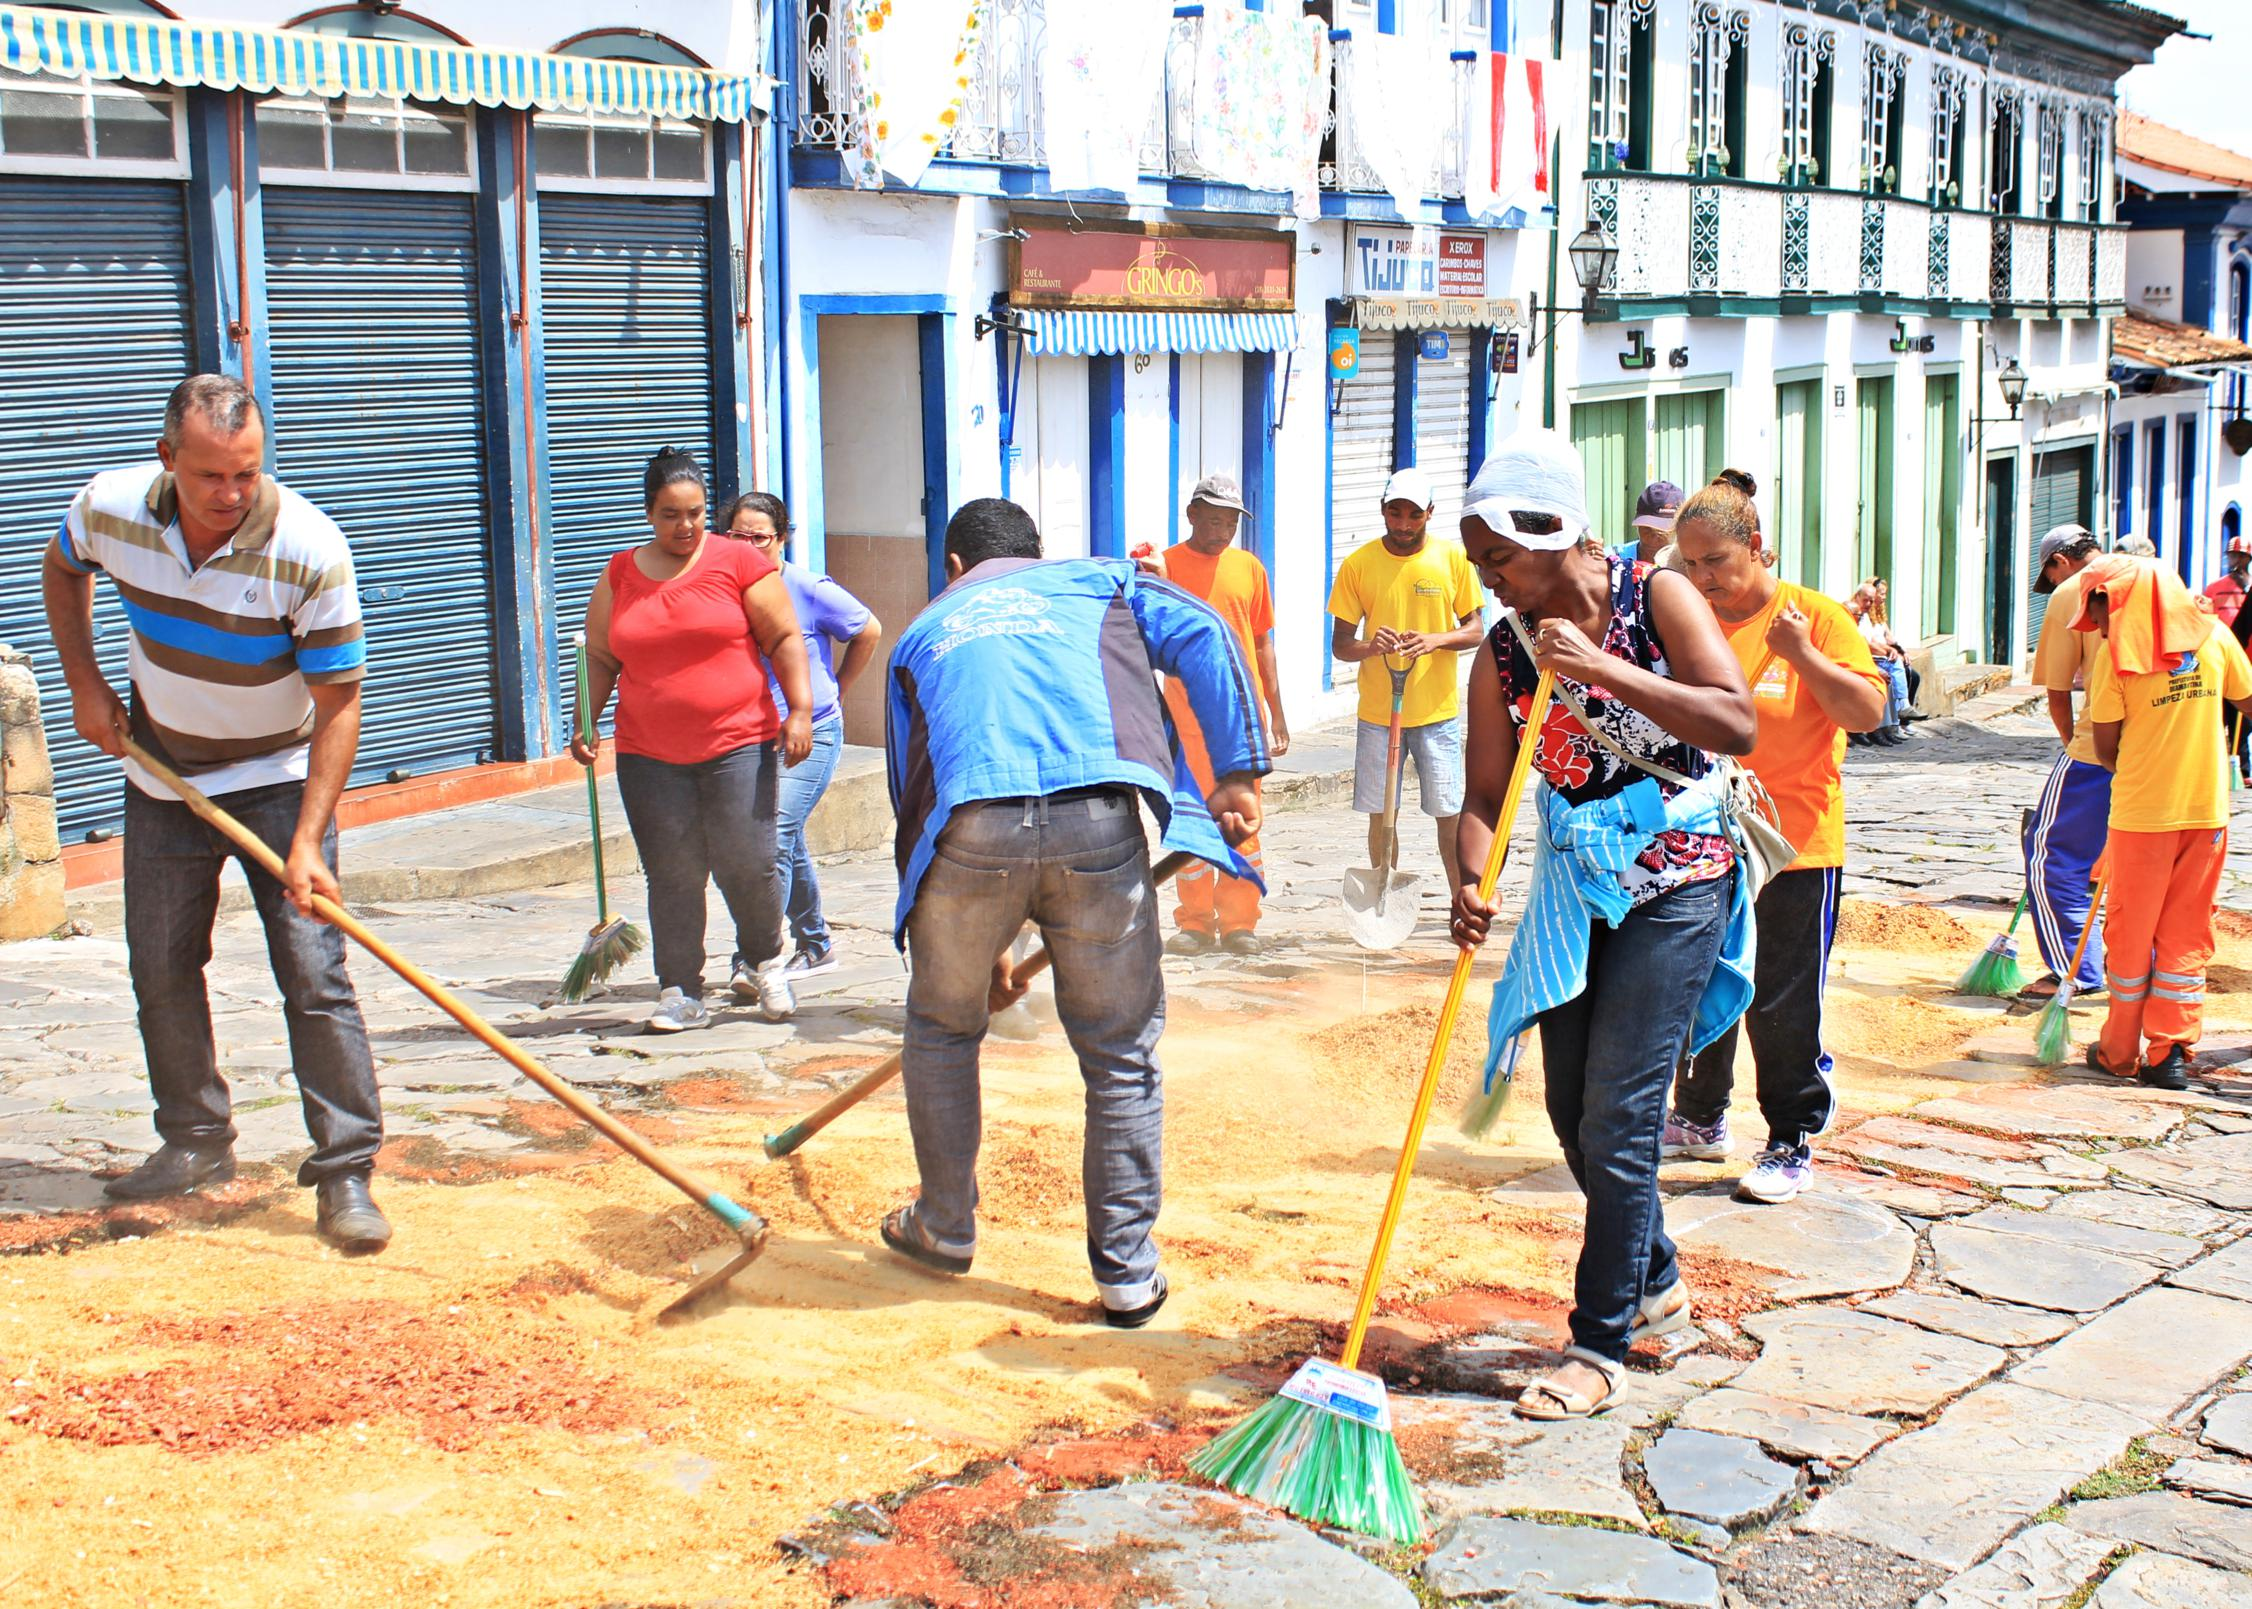 After celebrations of Holy Week, sawdust carpets are removed. Diamantina, Brazil. Photo by Juliana Silva.